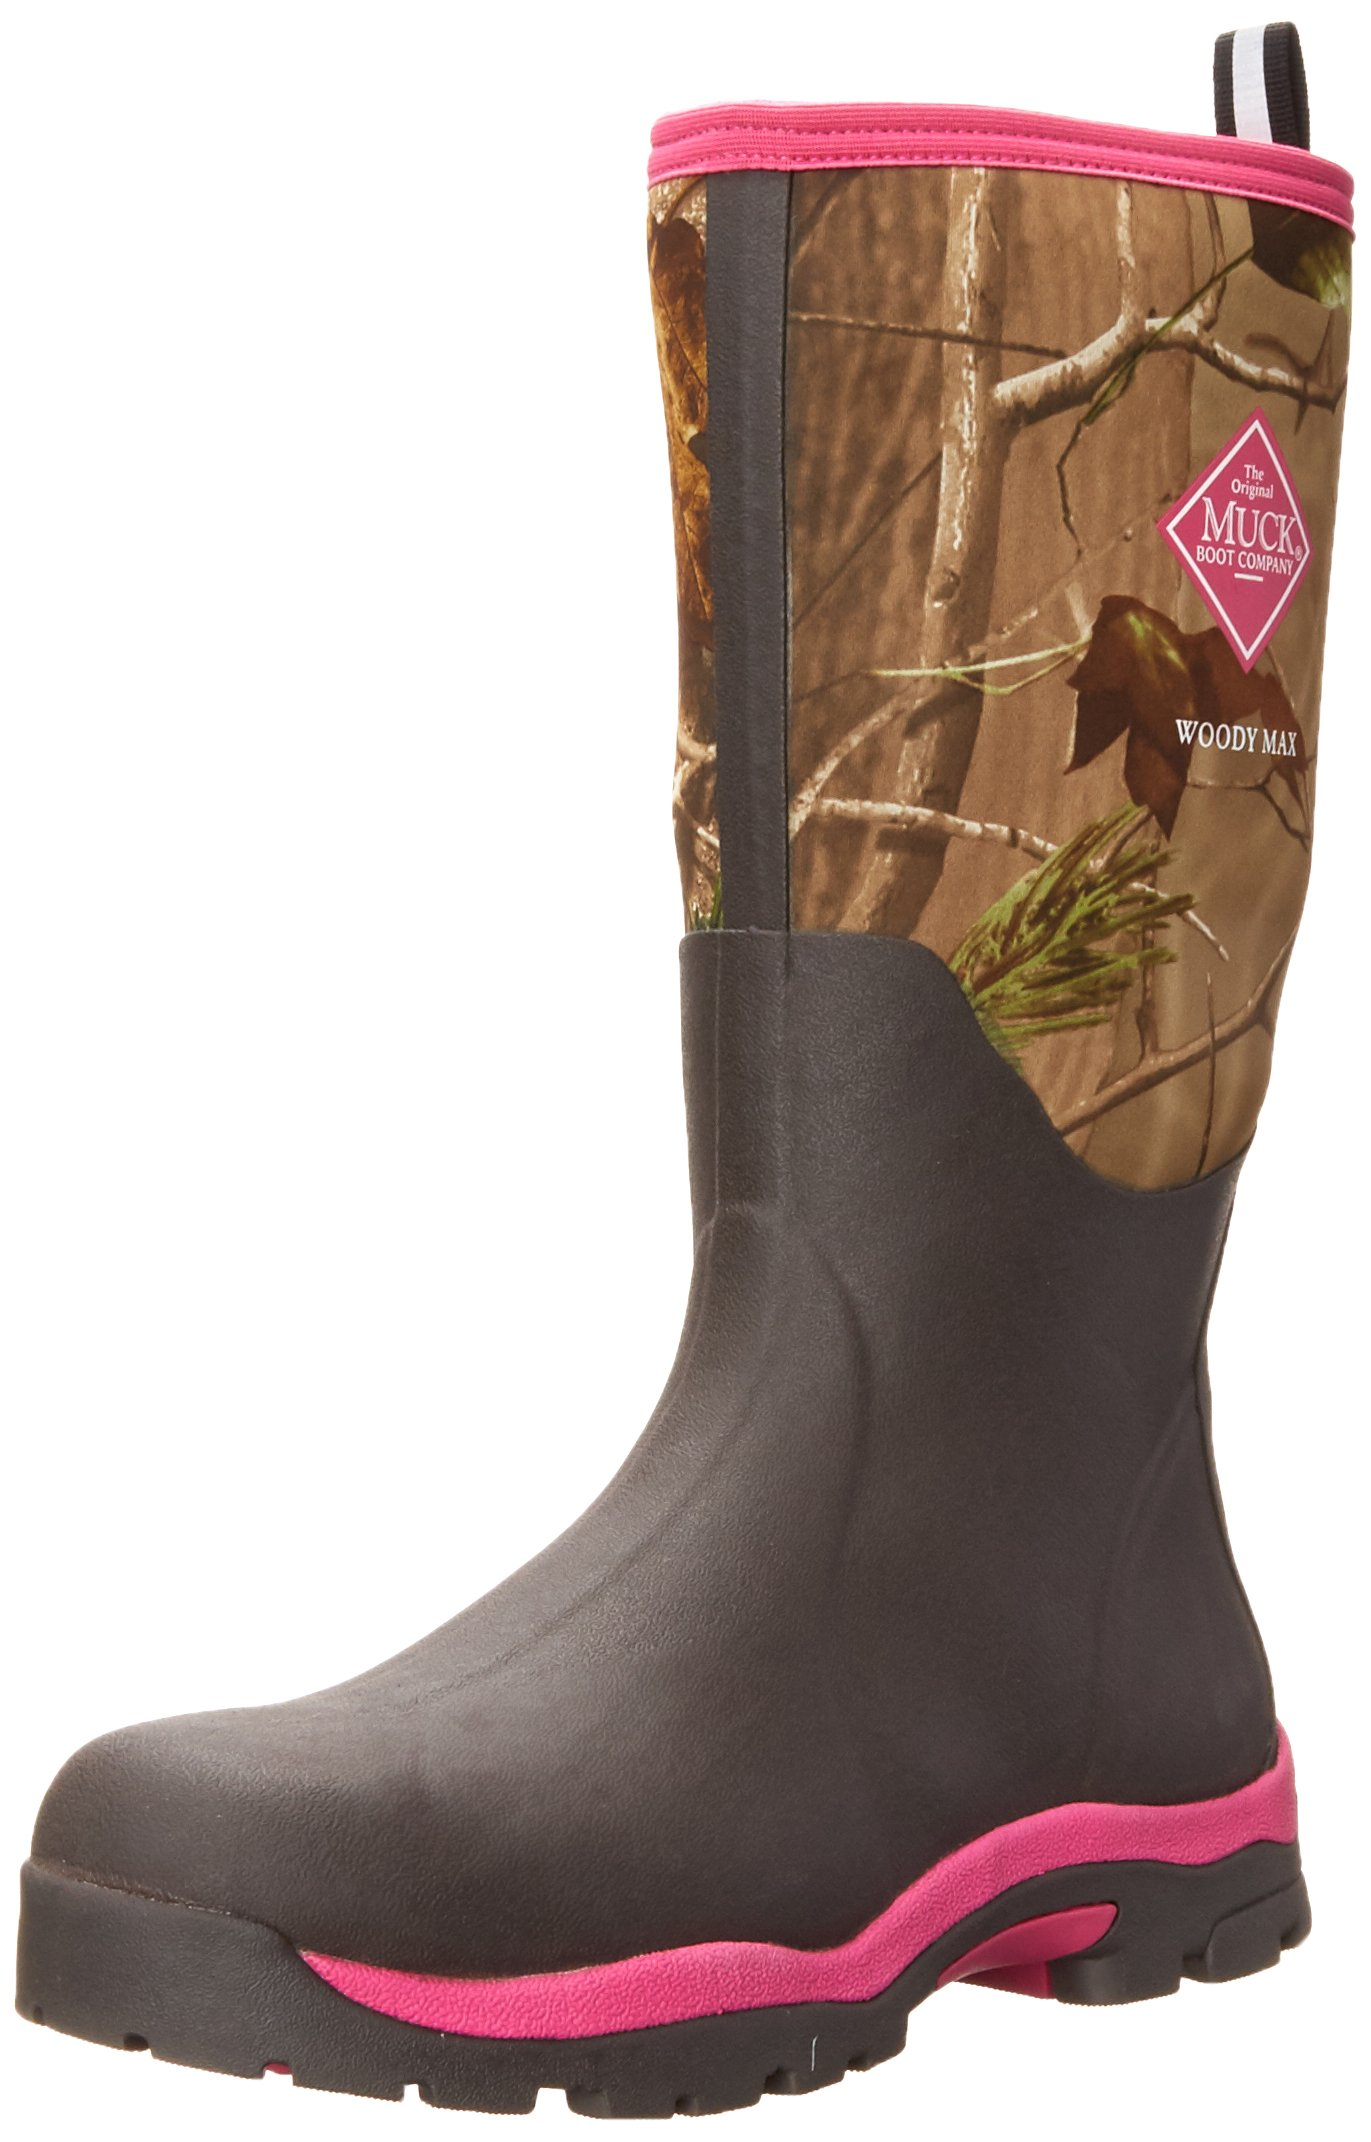 Muck Boot Womens Woody Pk Hunting Shoes, Bark/Realtree/Hot Pink, 7 US/7-7.5 M US